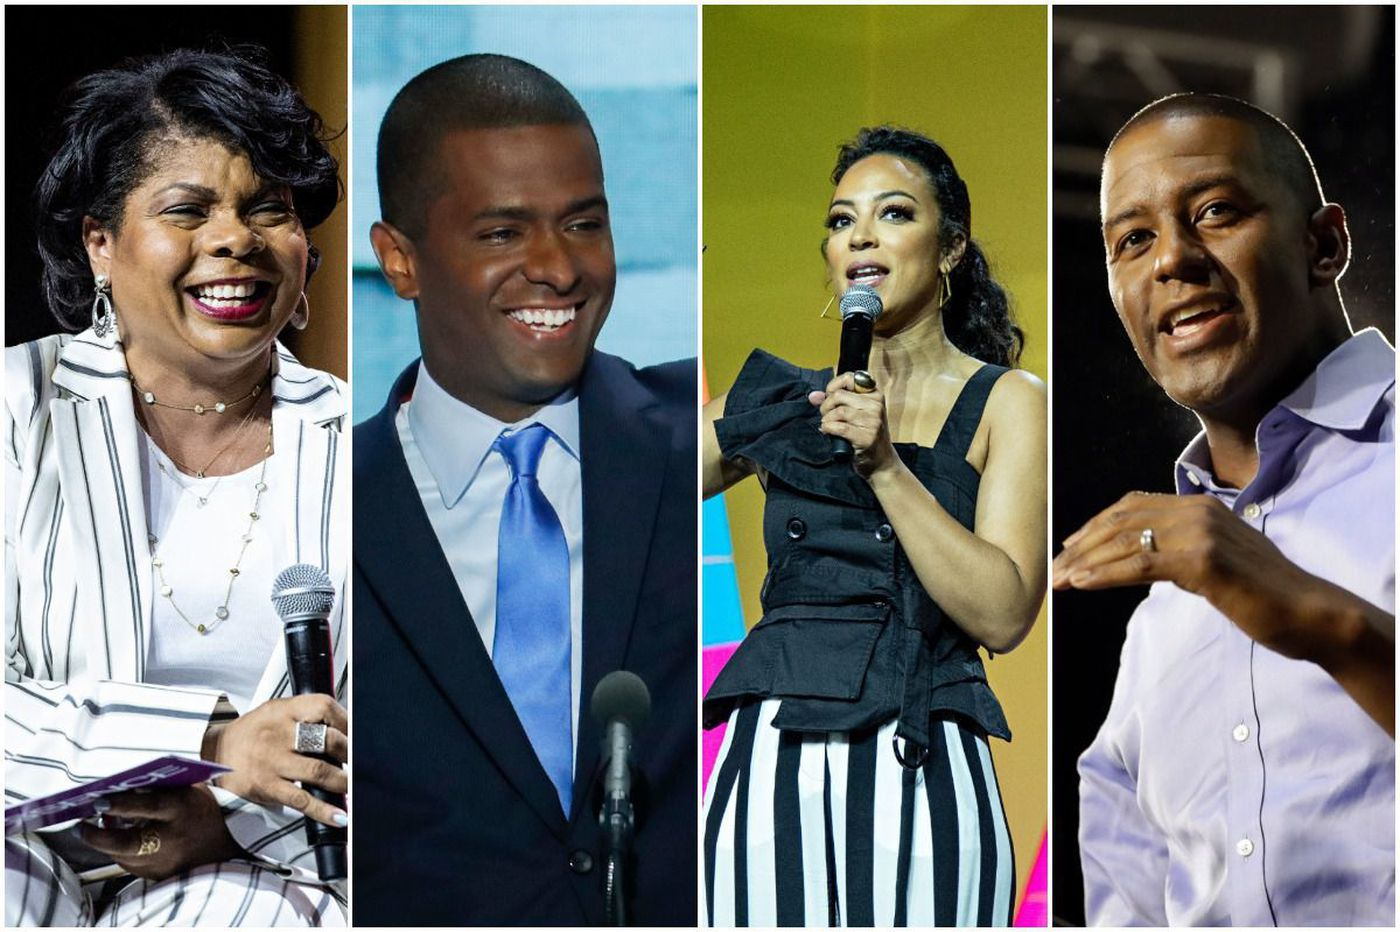 Why I find the idea of an all-black CNN panel exciting and worrisome | Elizabeth Wellington